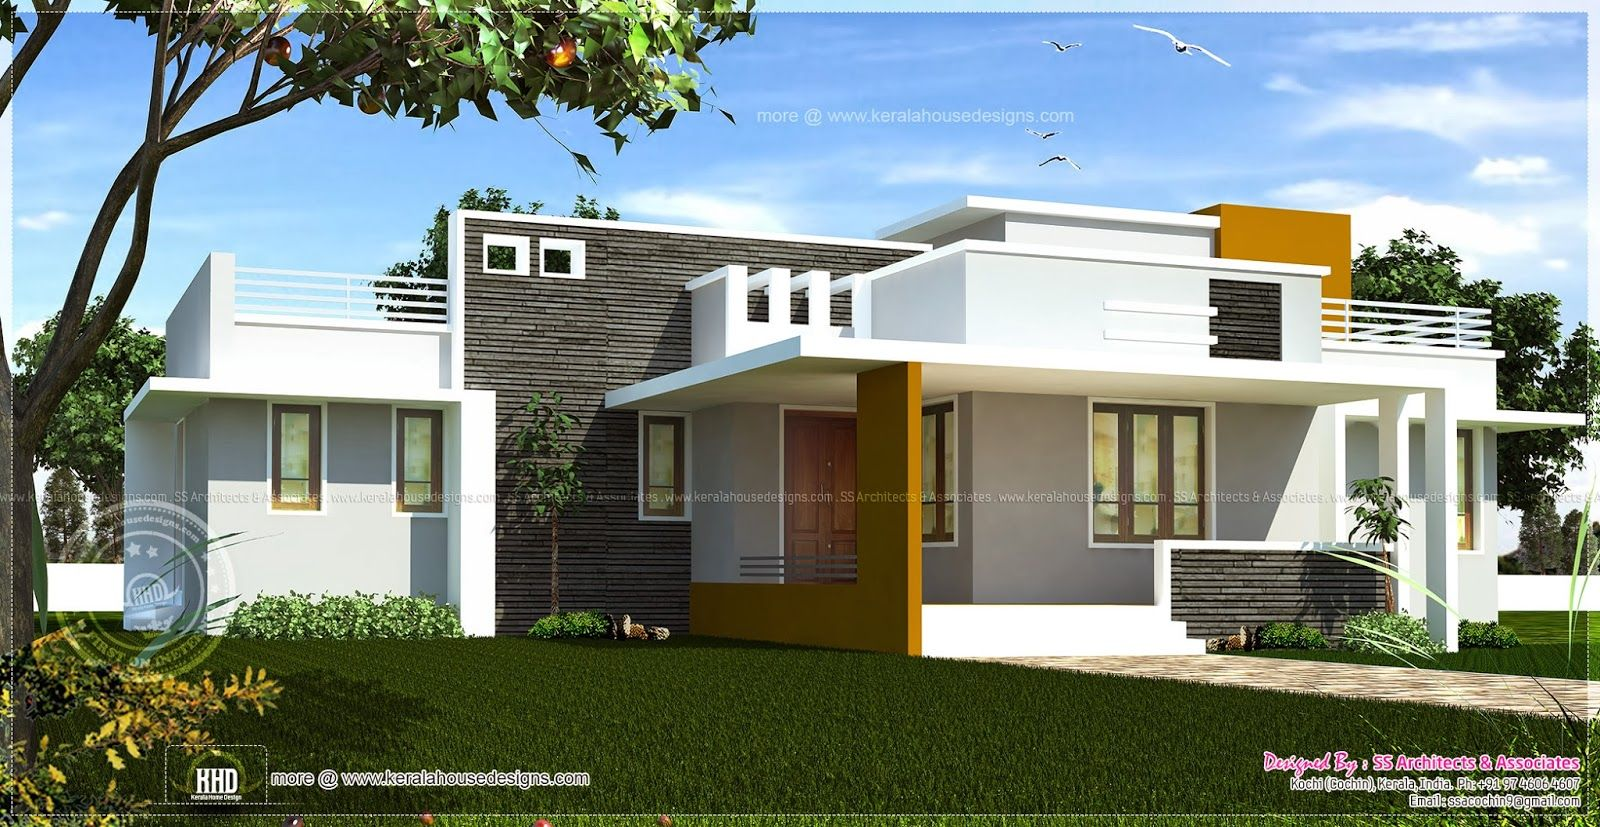 Excellent single home designs single floor contemporary for Modern house 2 floor